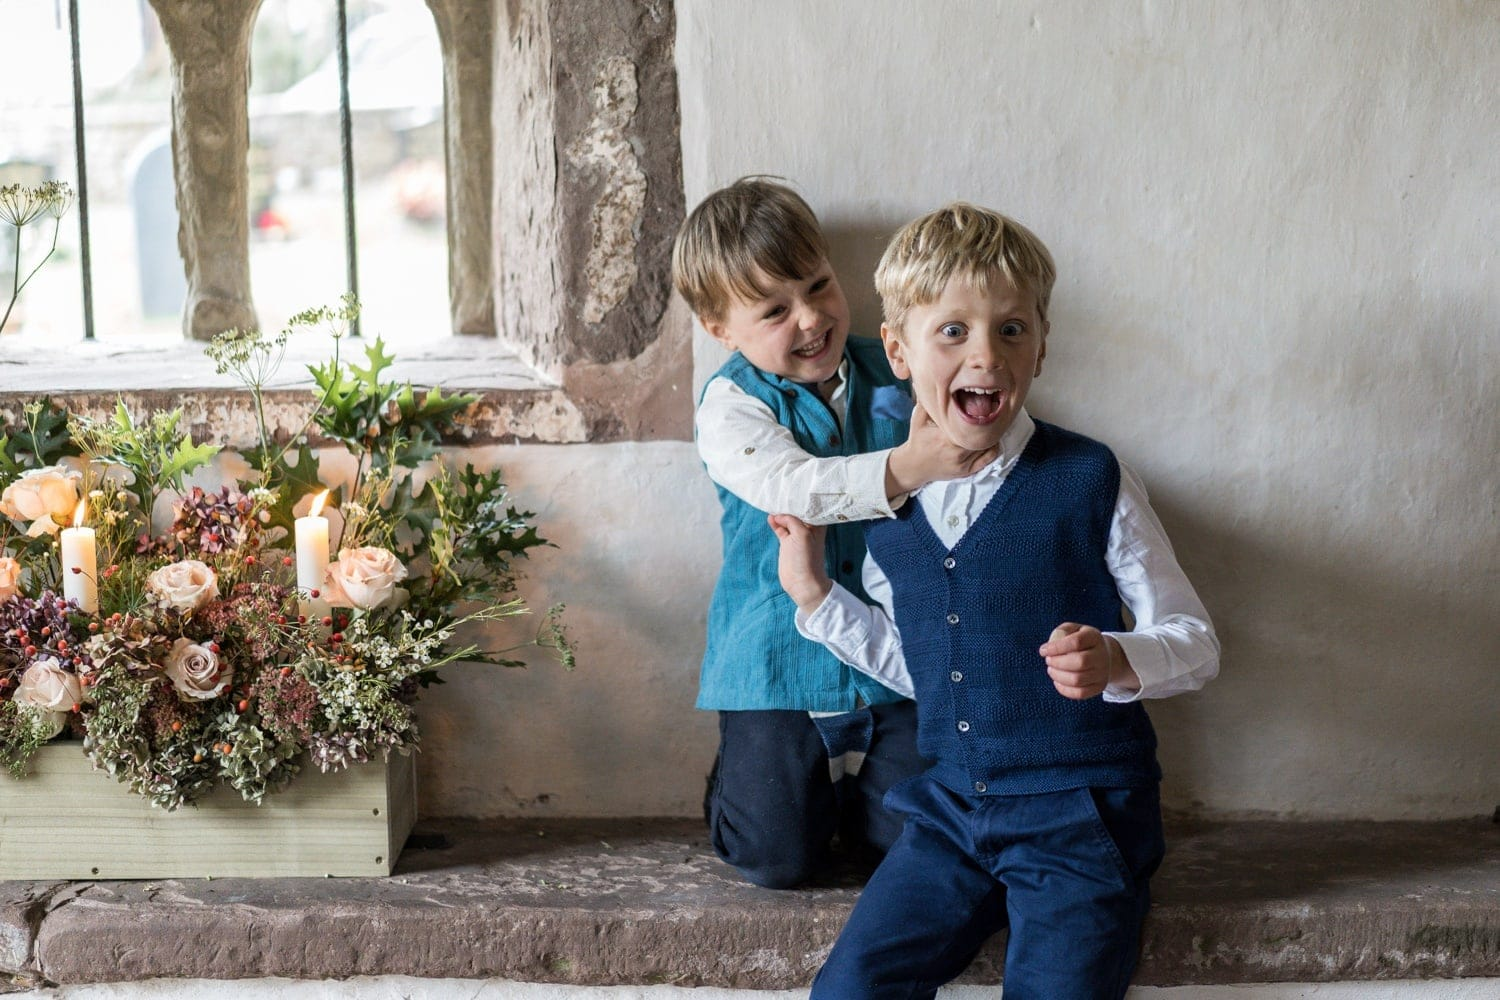 Boys messing about in church wedding in Monmouthshire